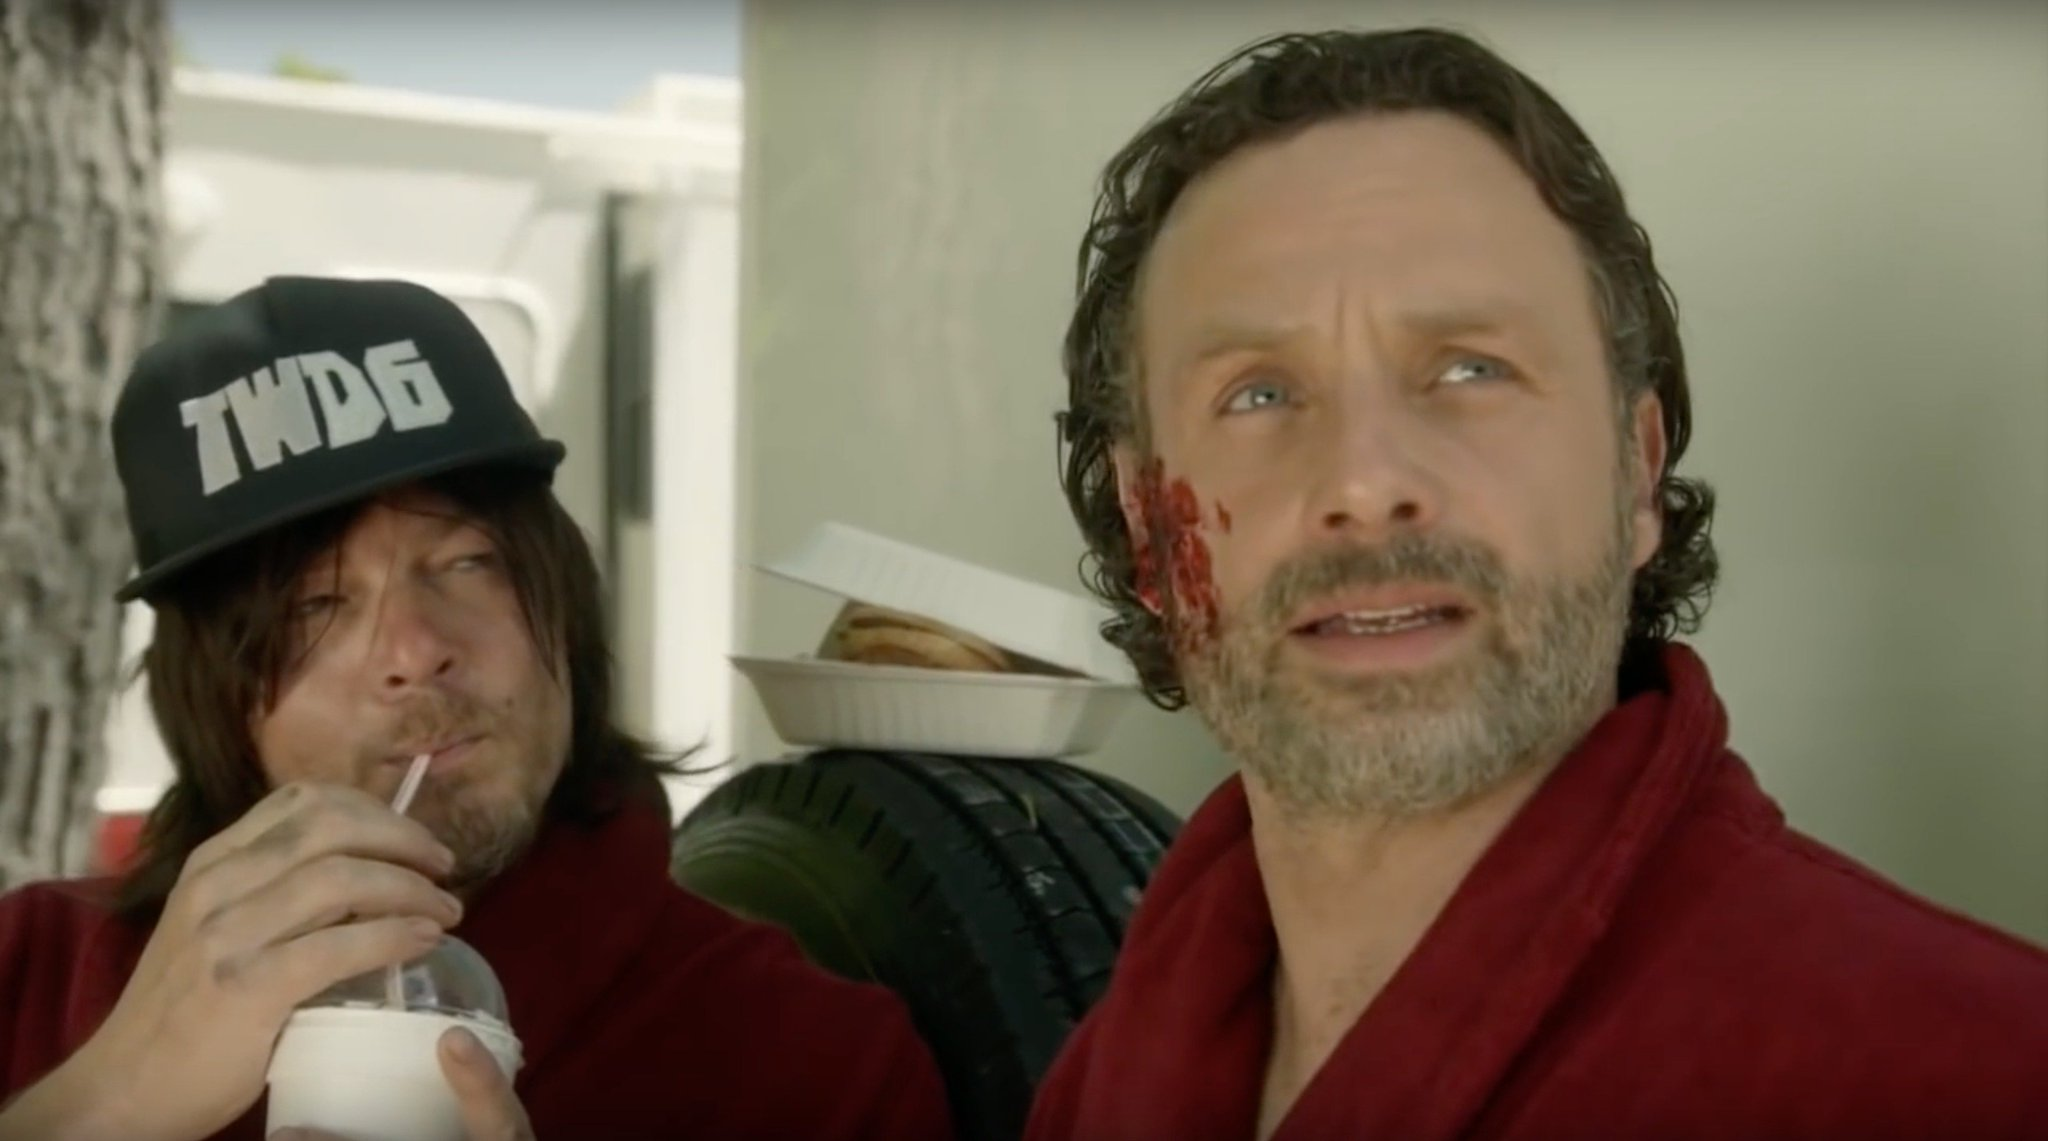 #TBT to the hilarious #WalkingDead-themed #RedNoseDay special from 2016: https://t.co/iV02wvW6r0 https://t.co/7tihpIPK5U